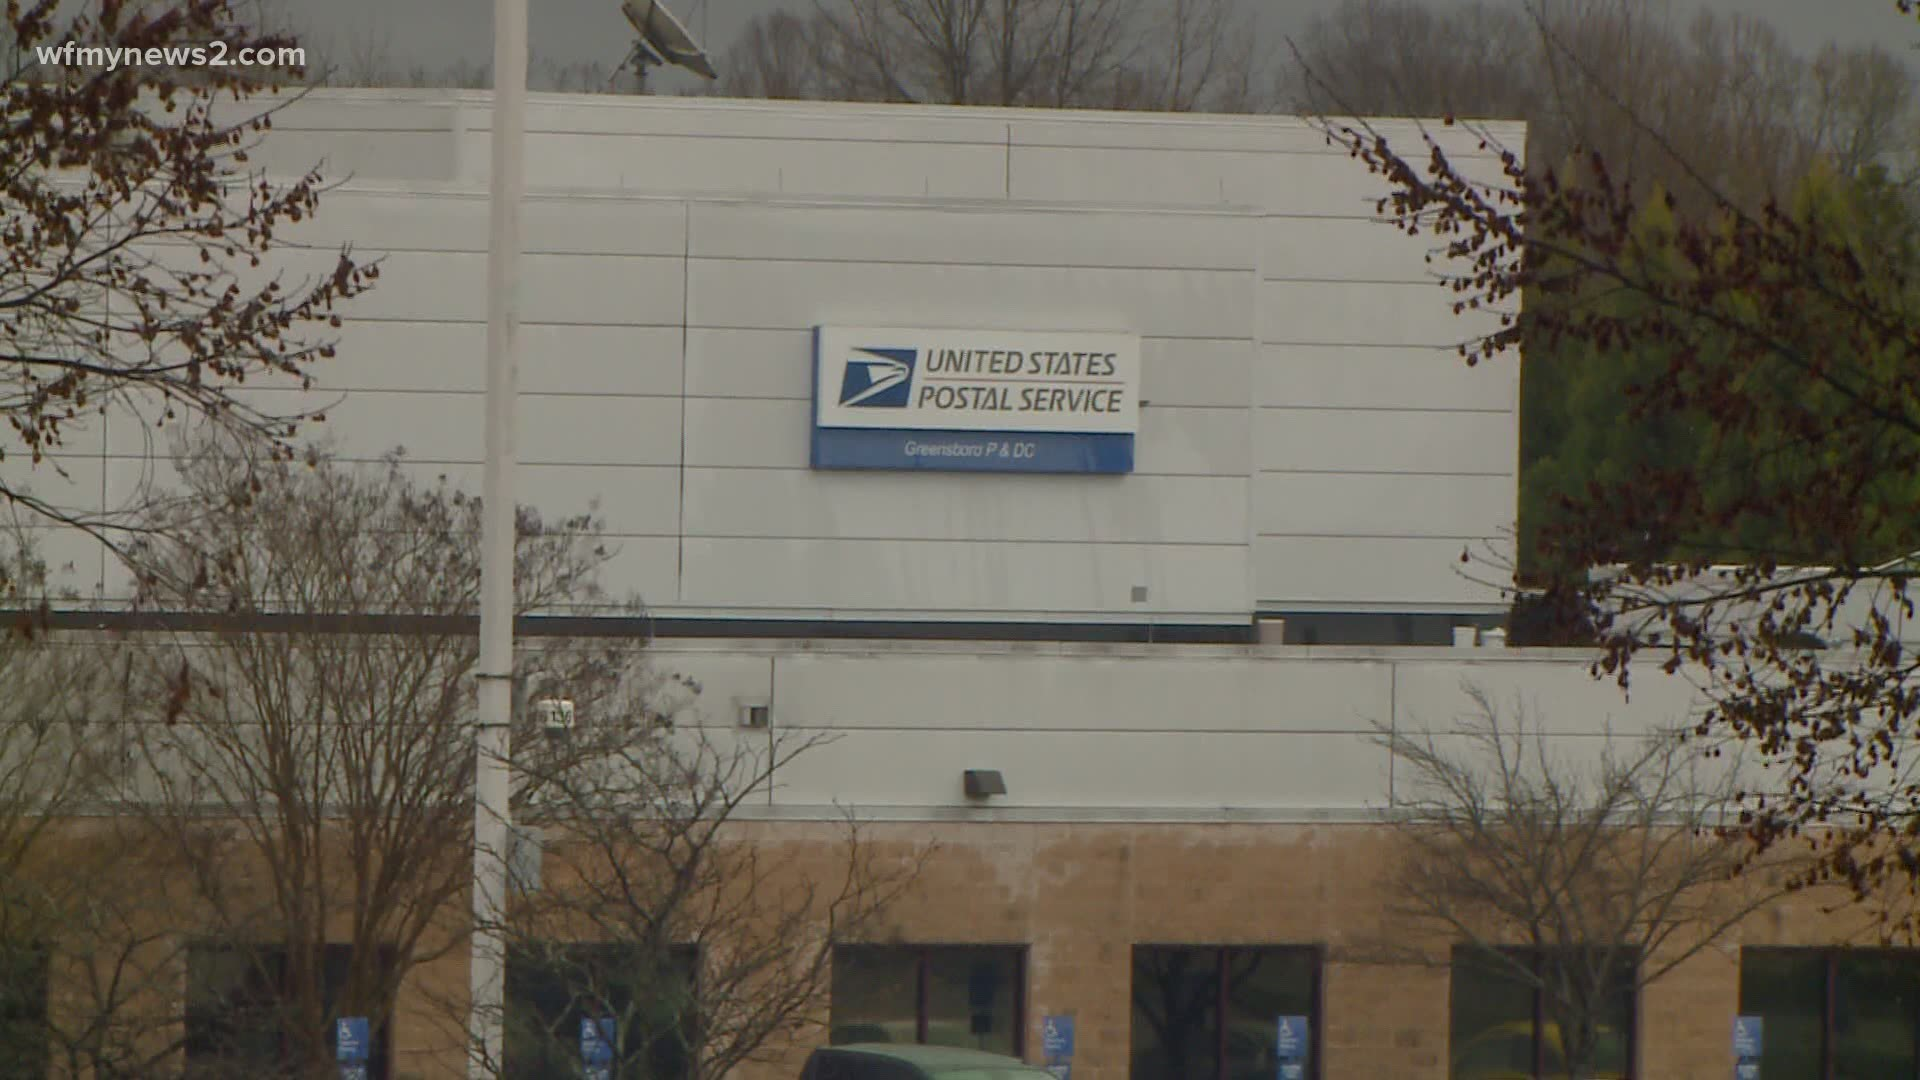 Usps Christmas Eve Hours 2021 W. Peachtree Atlanta Usps Warns Of More Shipping Delays Triad Residents Speak Out Wfmynews2 Com